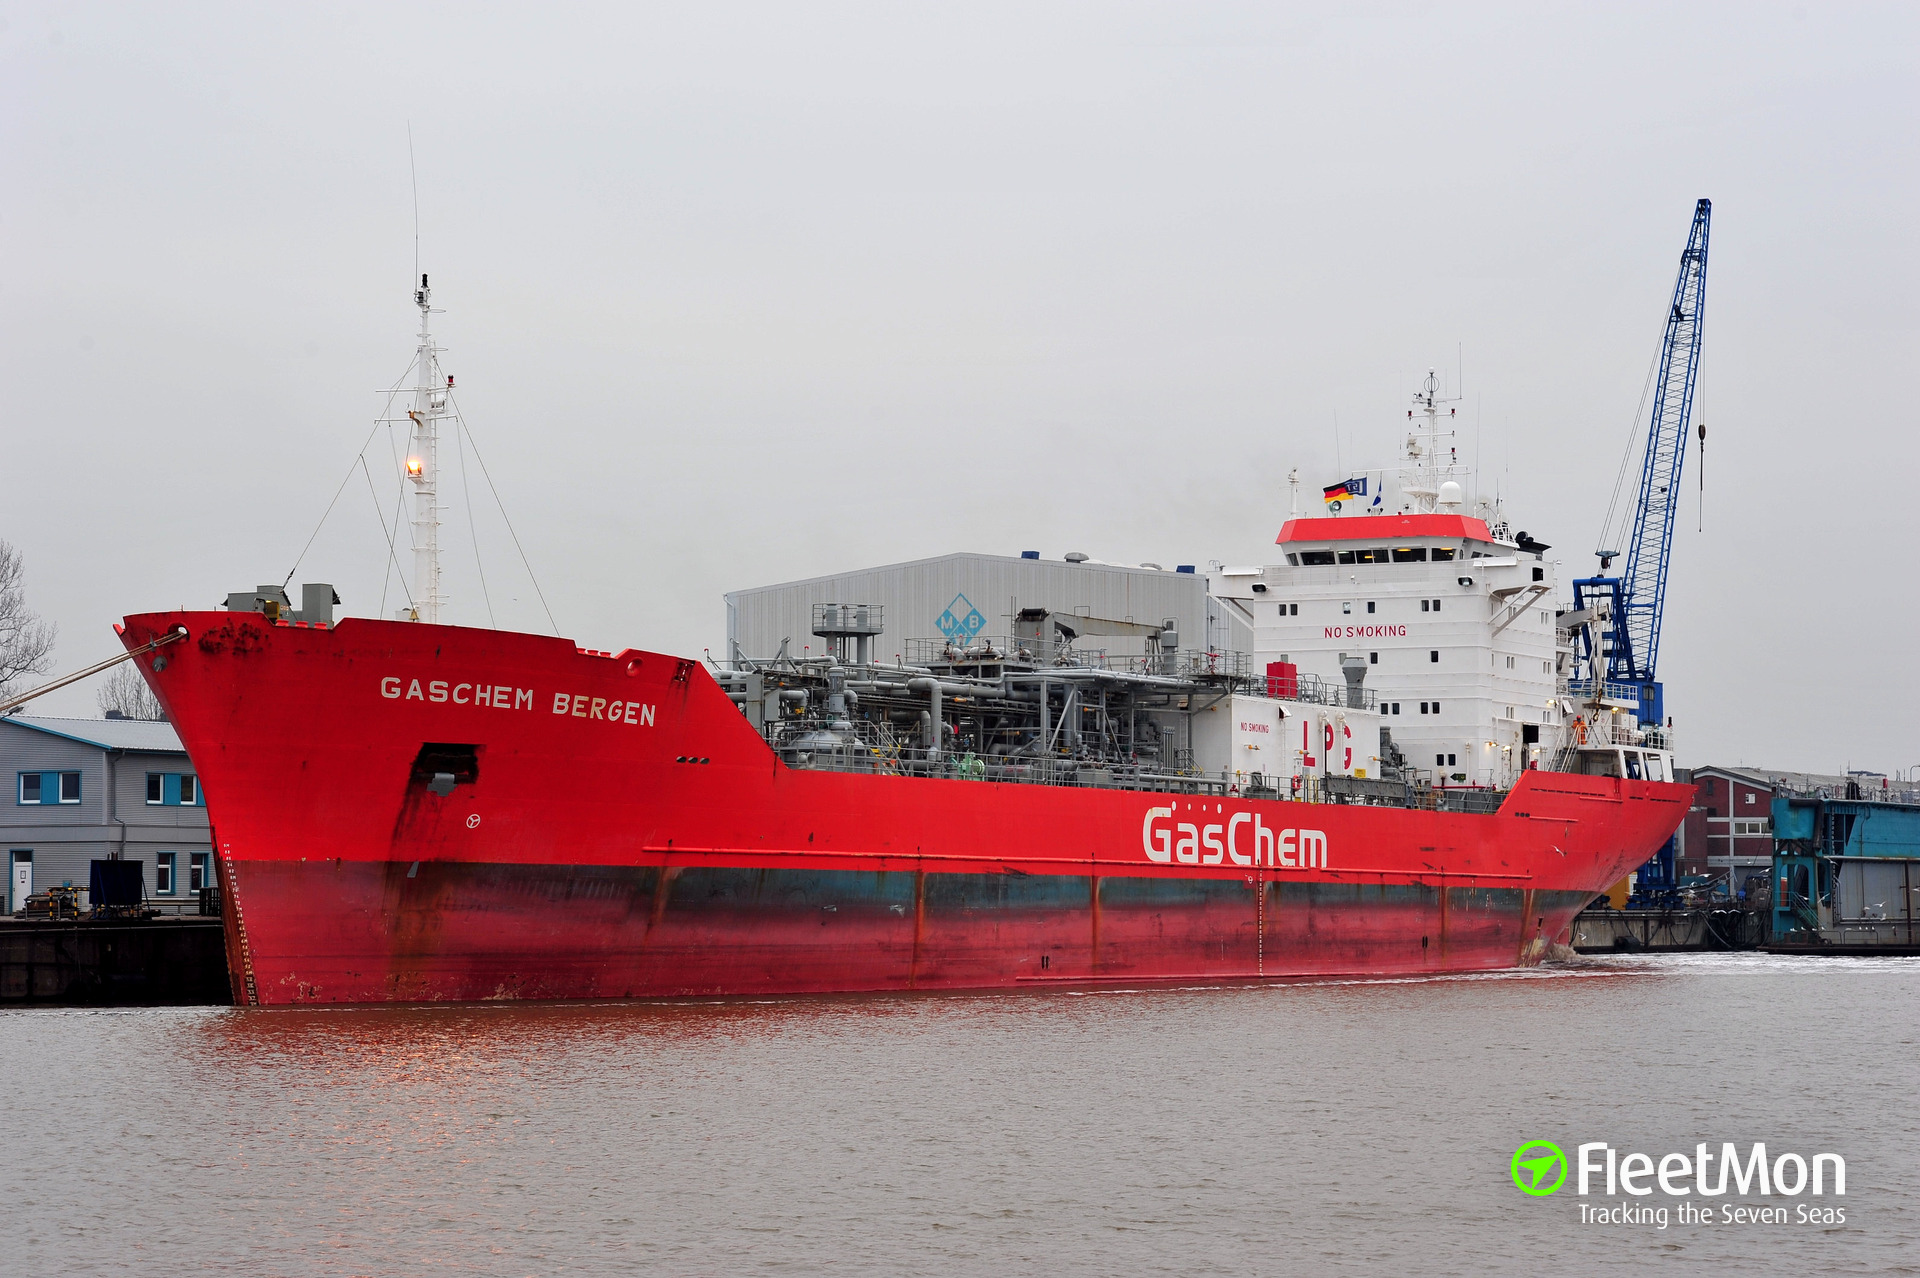 LPG tanker Royal Jade vs. offshore supply tug X Press 27